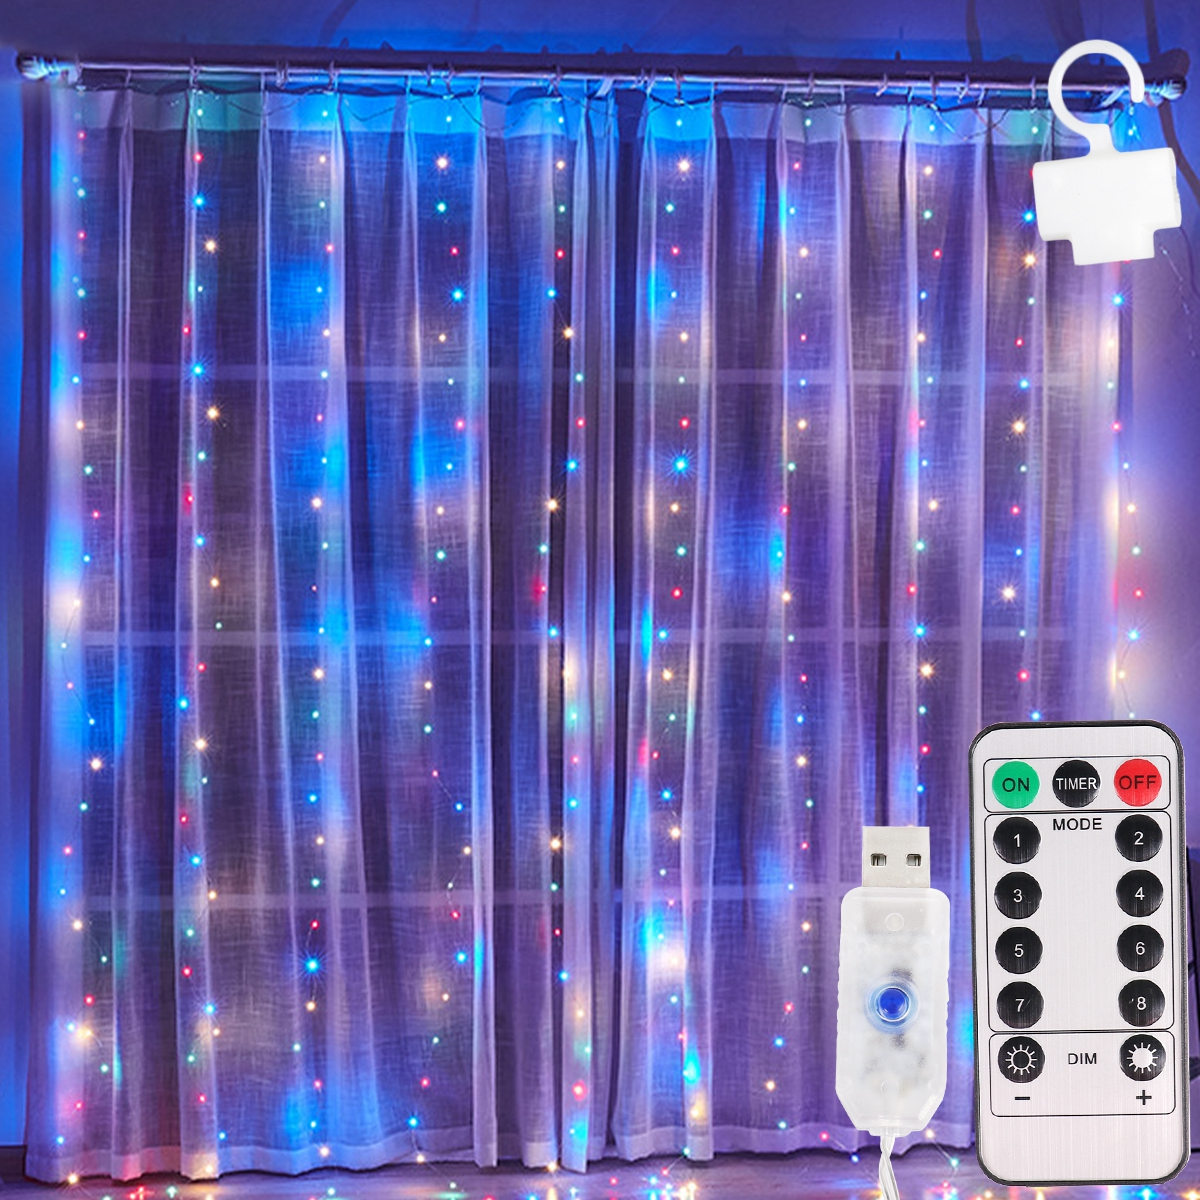 Permalink to 3M LED Fairy Lights Garland Curtain Lamp Remote Control USB String Lights garland on the window Christmas Decorations for Home